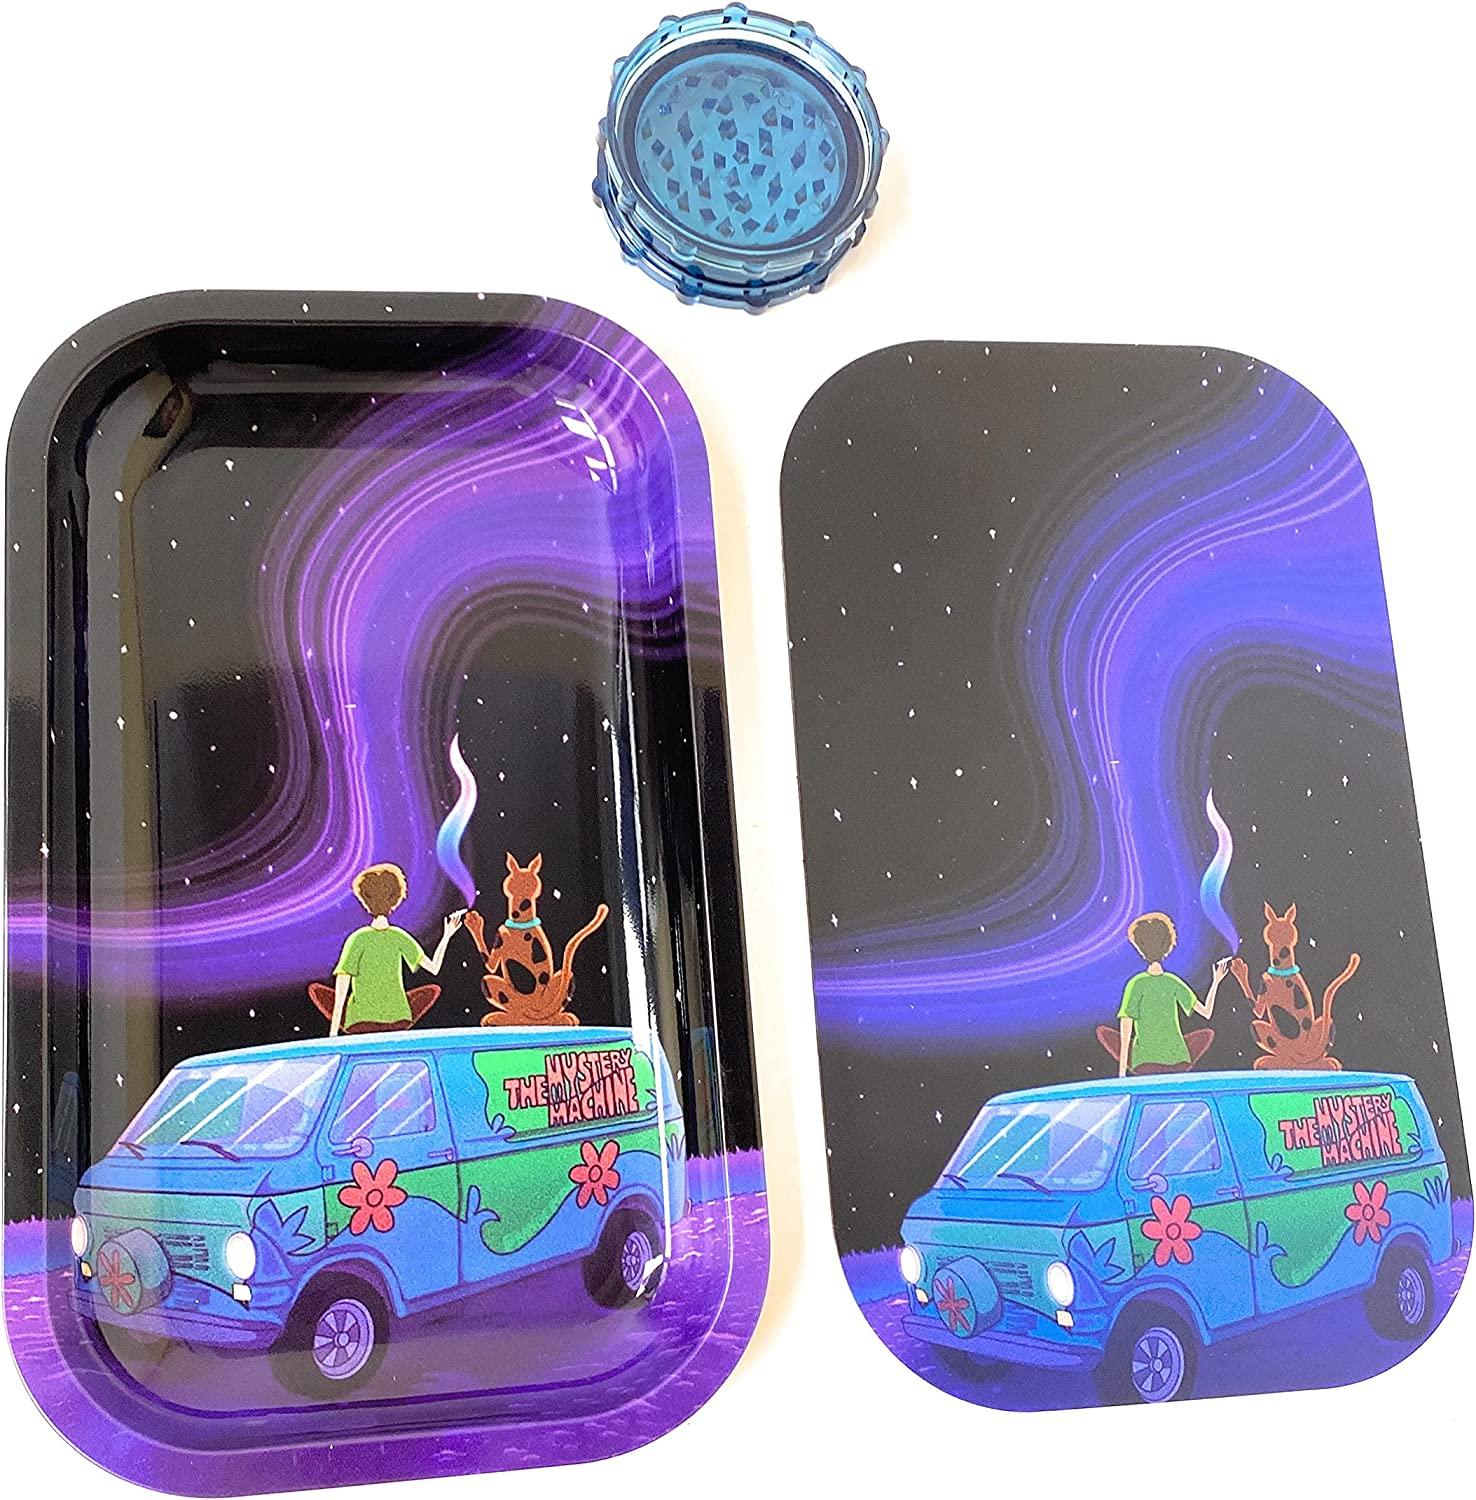 Metal Rolling Tray 11x7 Inches Include Smoking Shaggy Scooby and OFFicial shop 2021 autumn and winter new